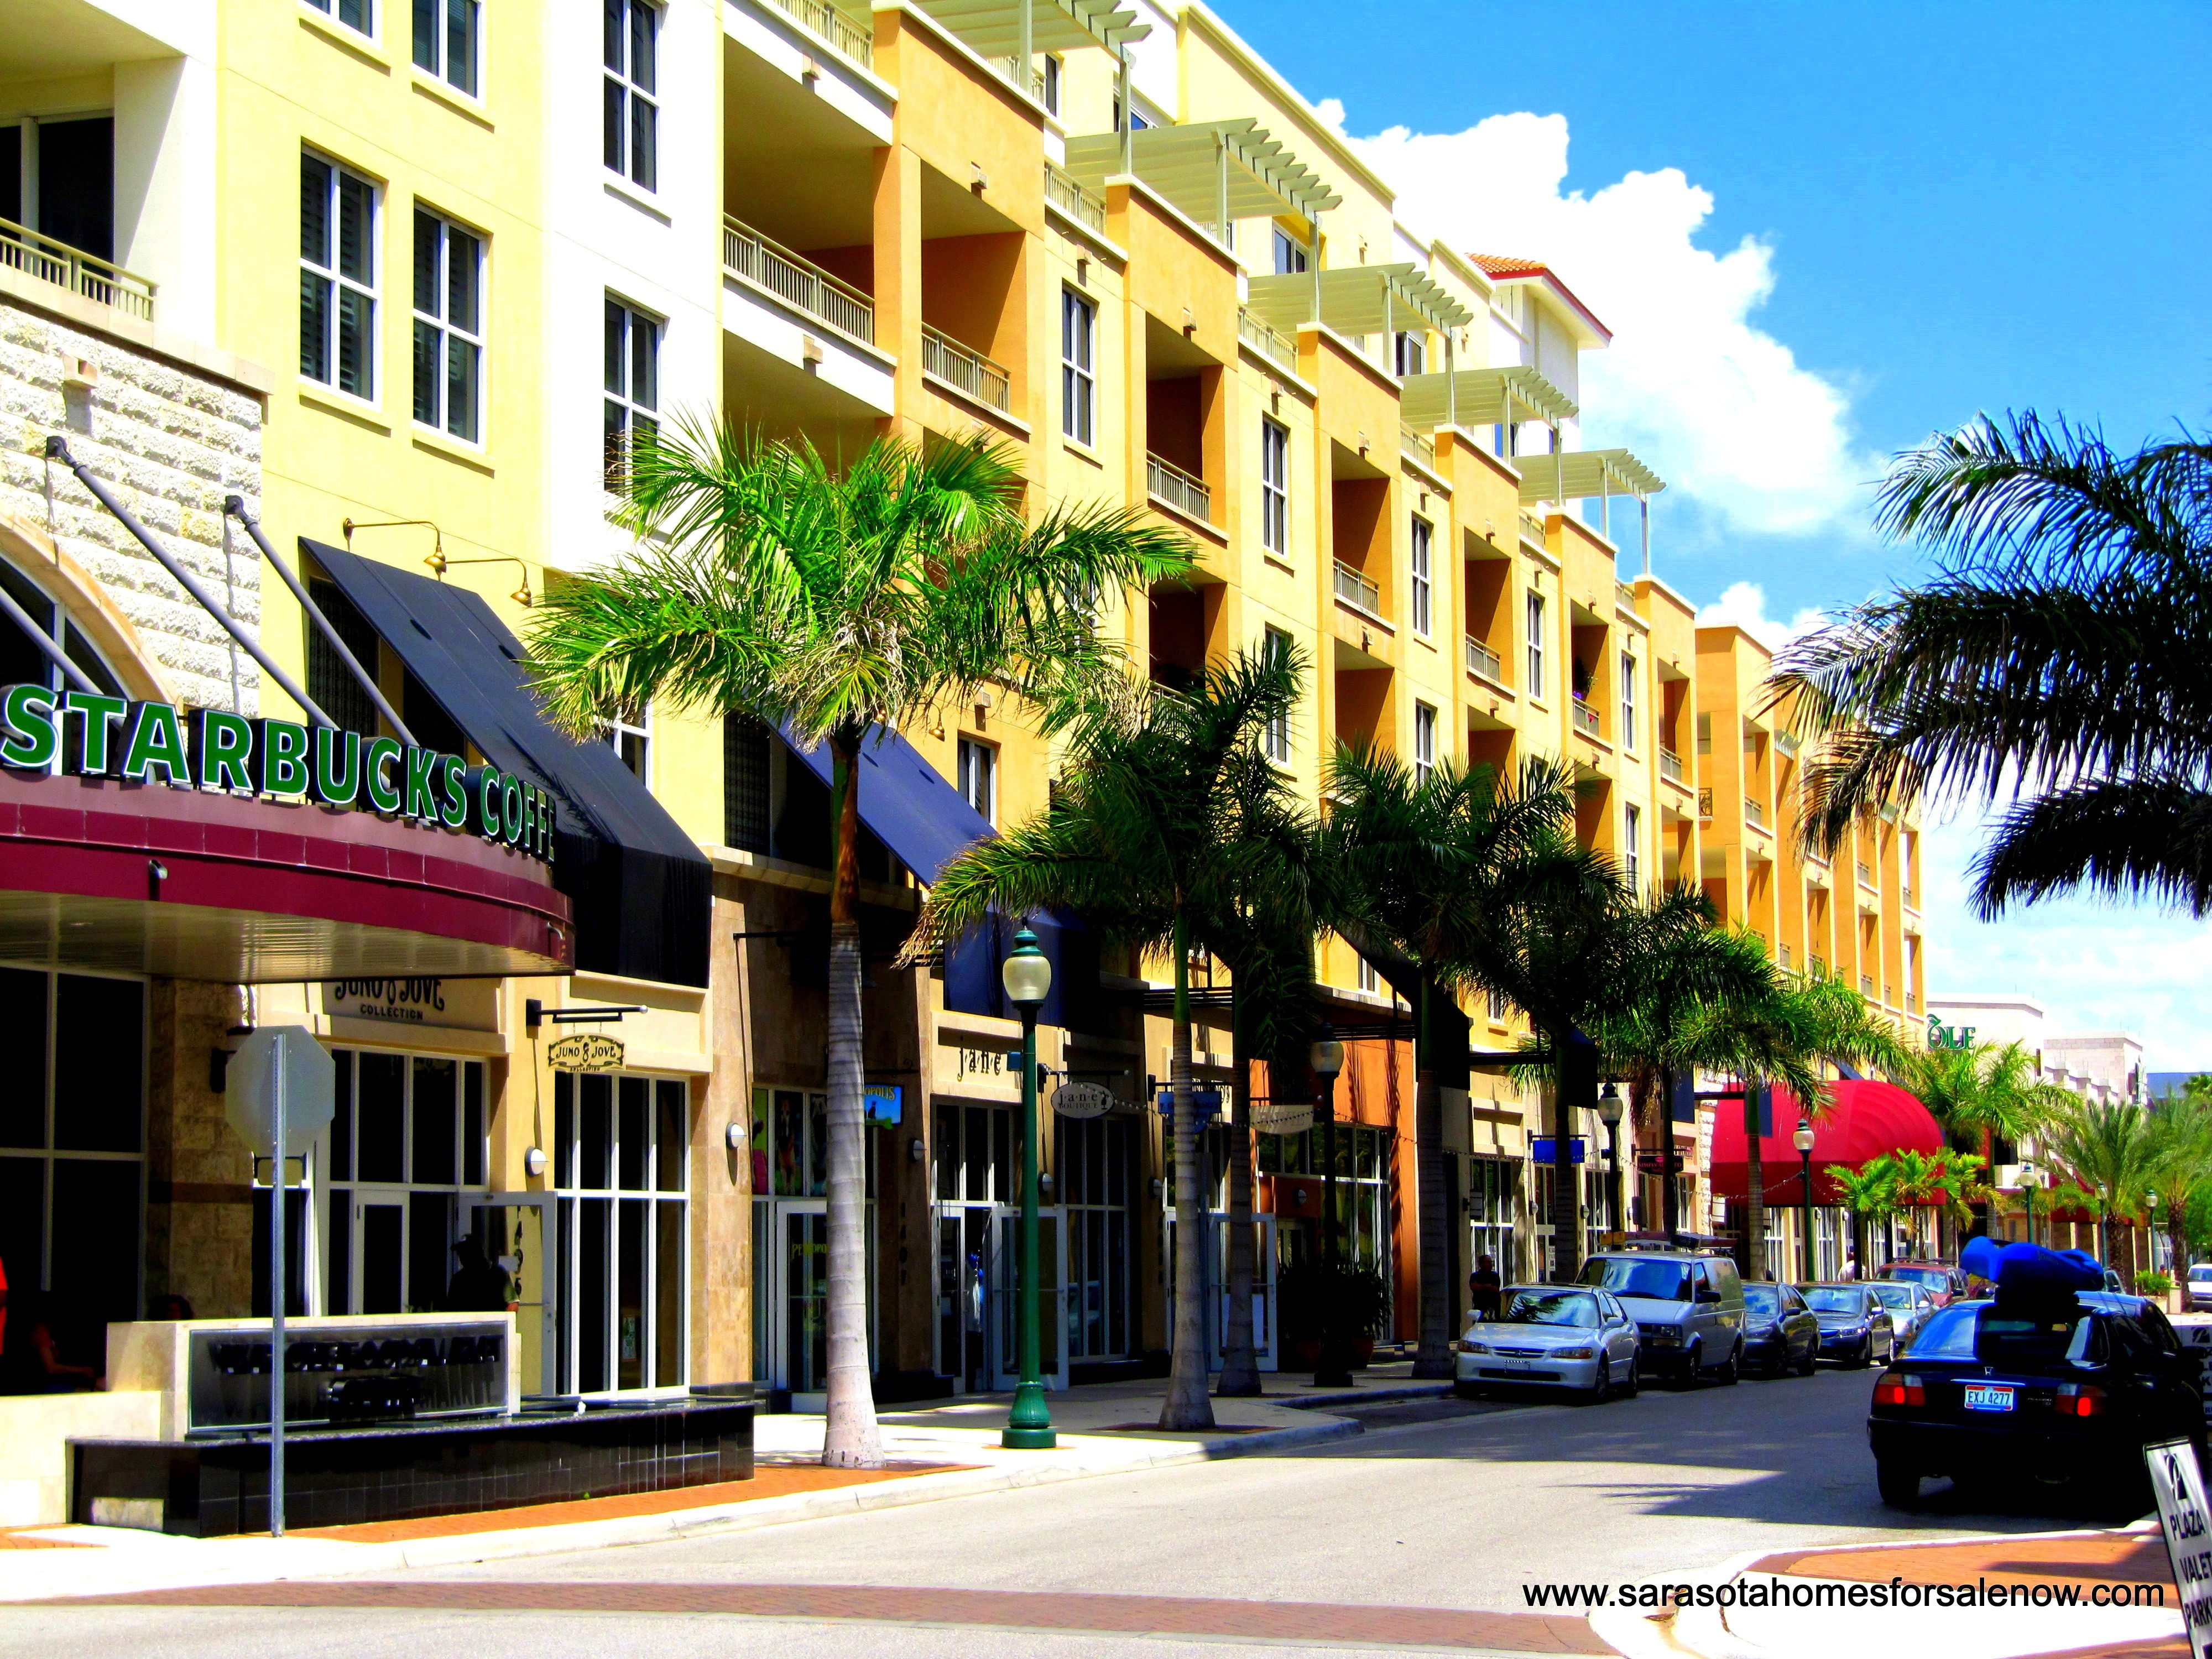 Safe New Vibrant Sarasota S Downtown Offers Easy Walking To